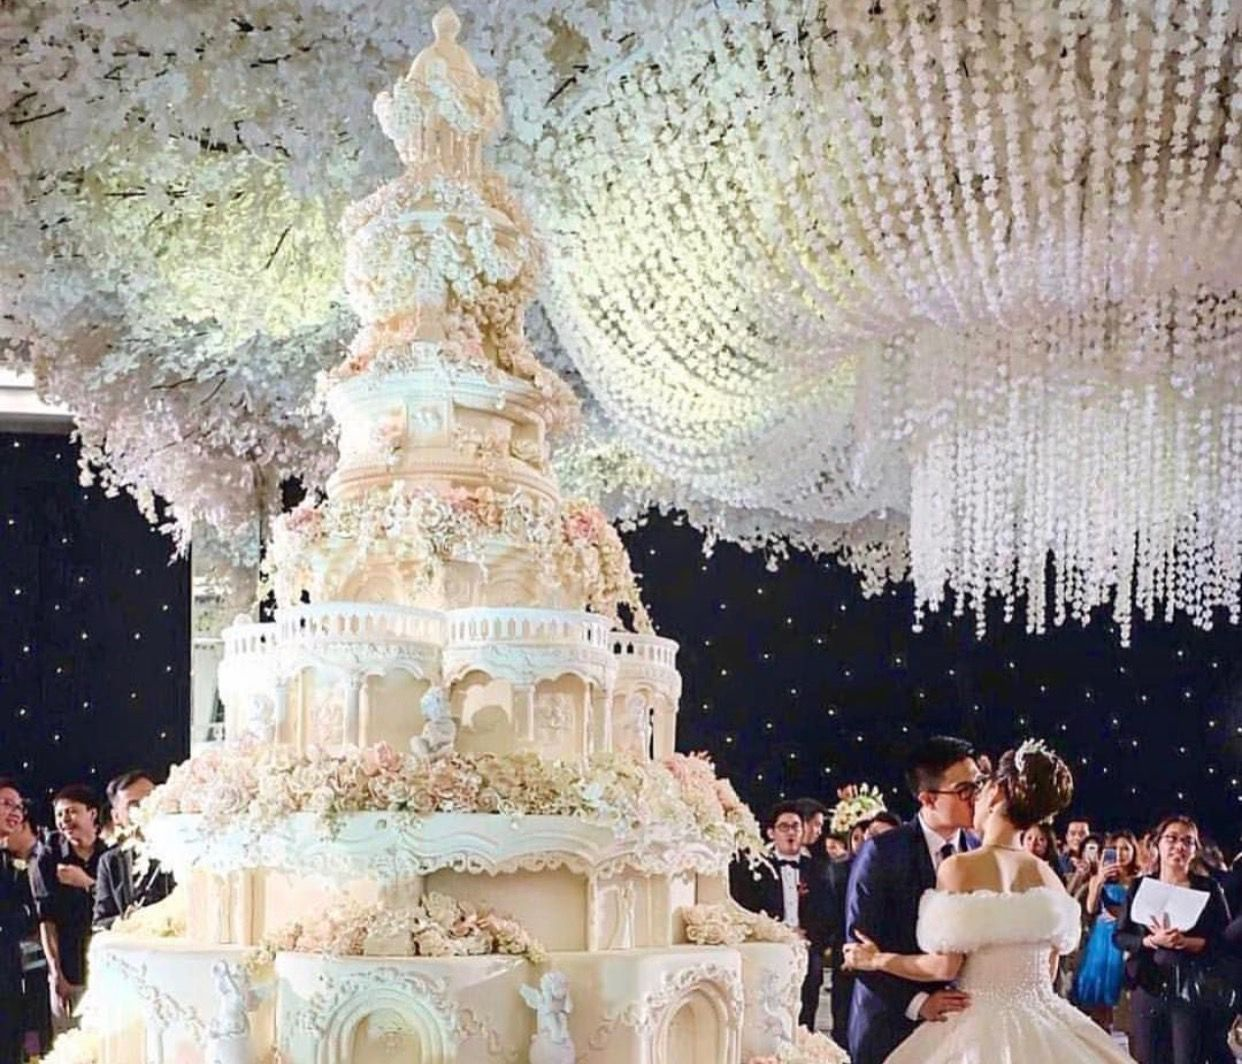 The biggest wedding cake EVER! (With images) Huge